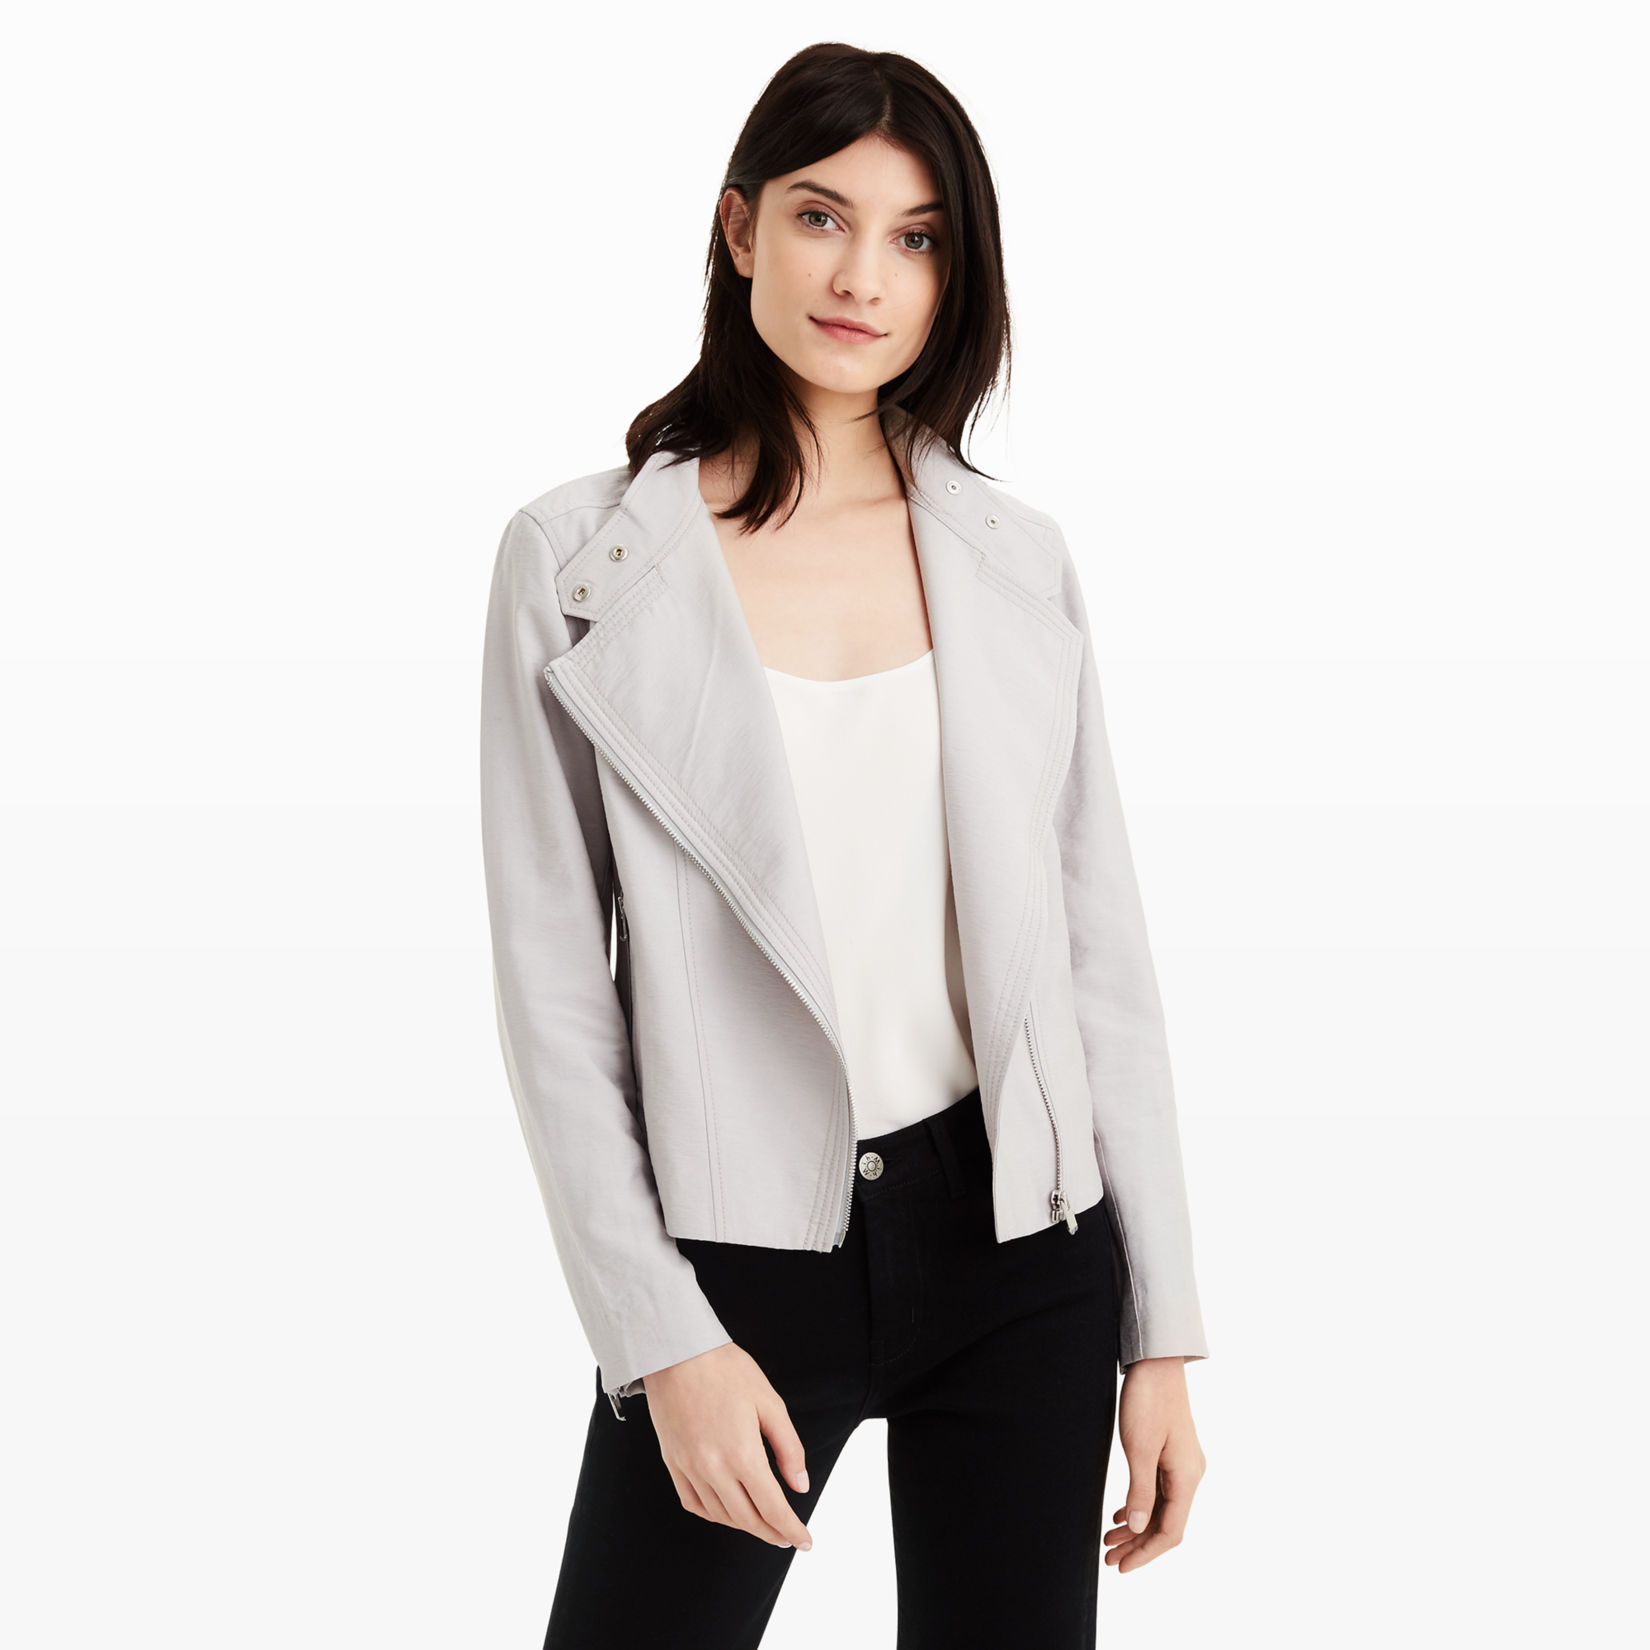 Sep 28, · Edit Article How to Wear a White Blazer. Three Parts: Choosing the Correct Fit Wearing a White Blazer to Work Wearing a White Blazer Casually Community Q&A White blazers have been a hot fashion trend for the last few years, becoming more prevalent than black r0nd.tk: K.